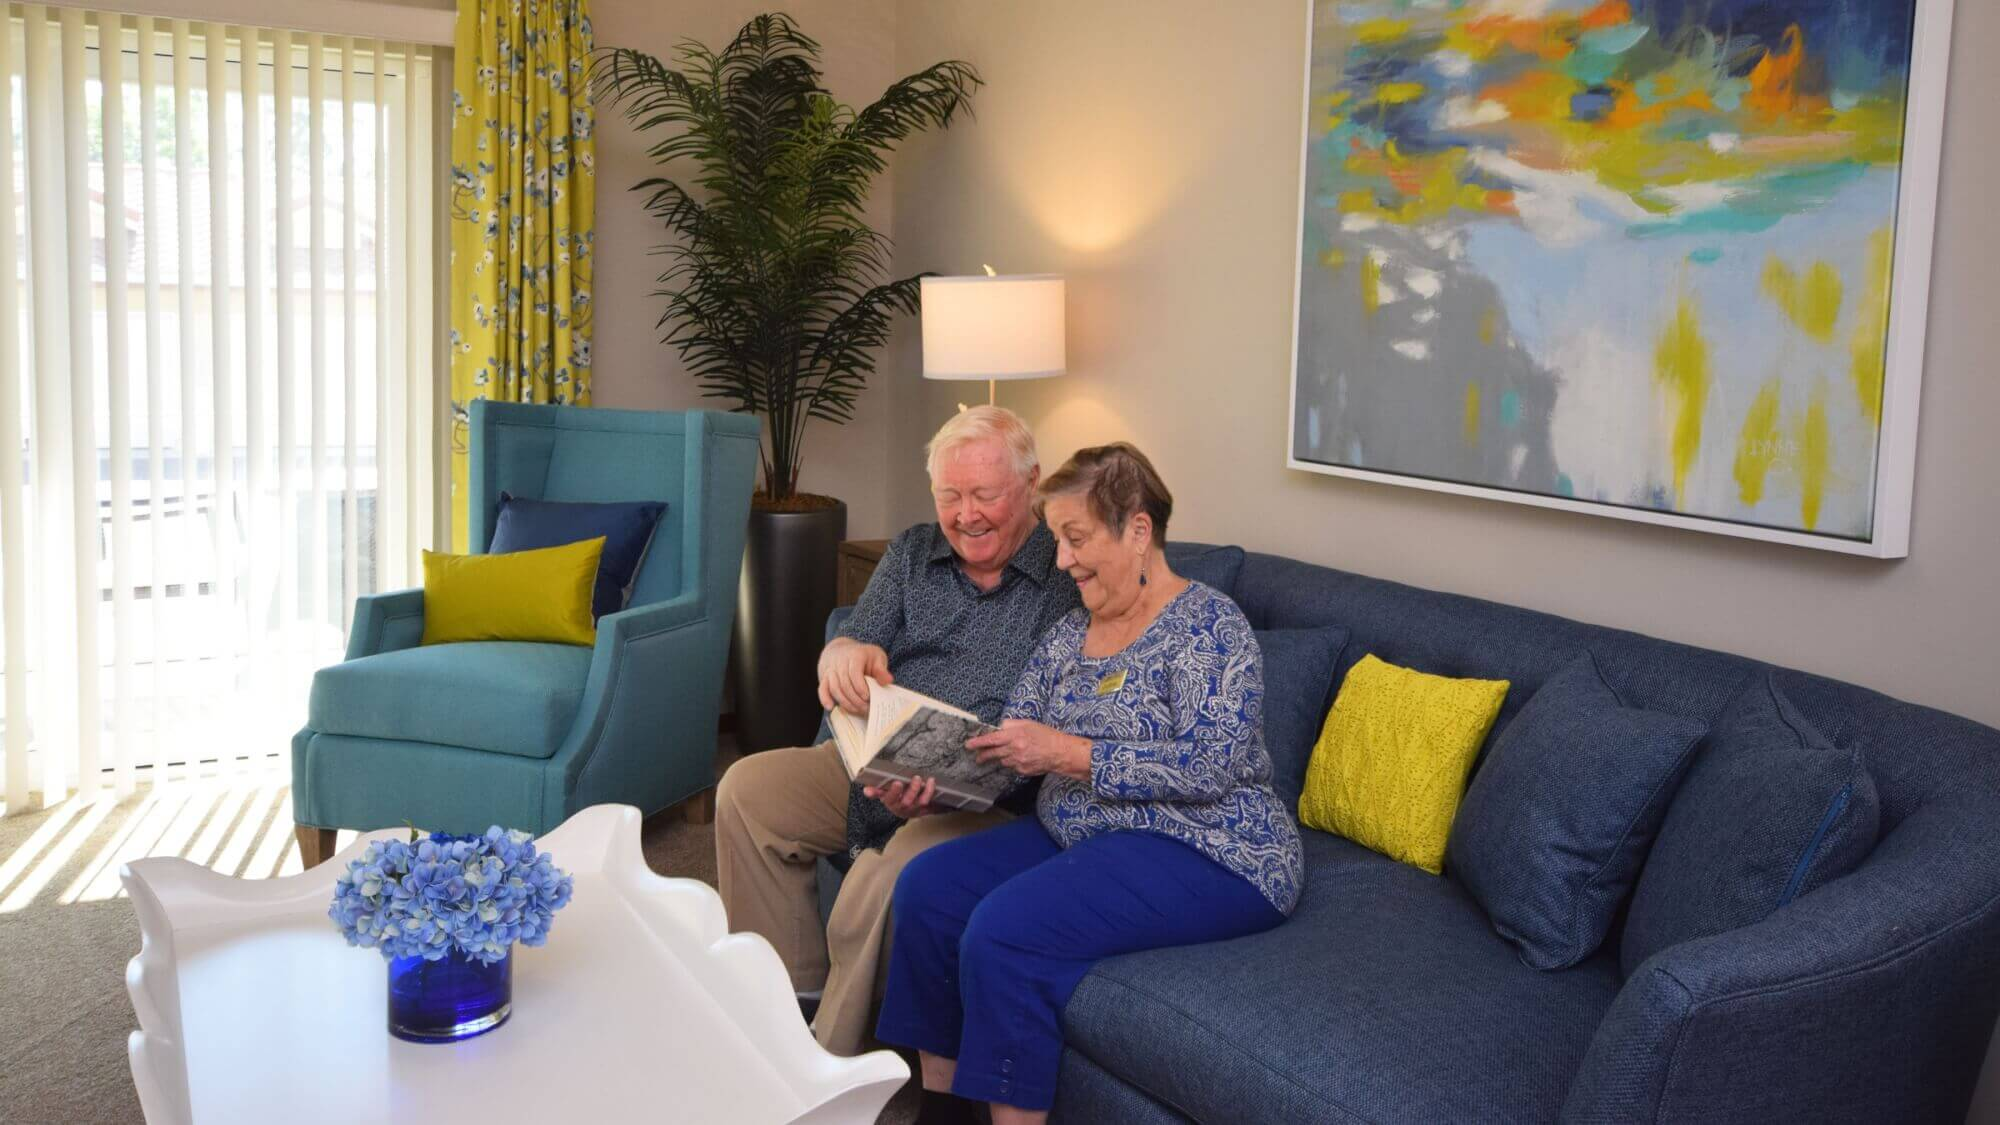 Senior couple sitting on the couch reading a book.